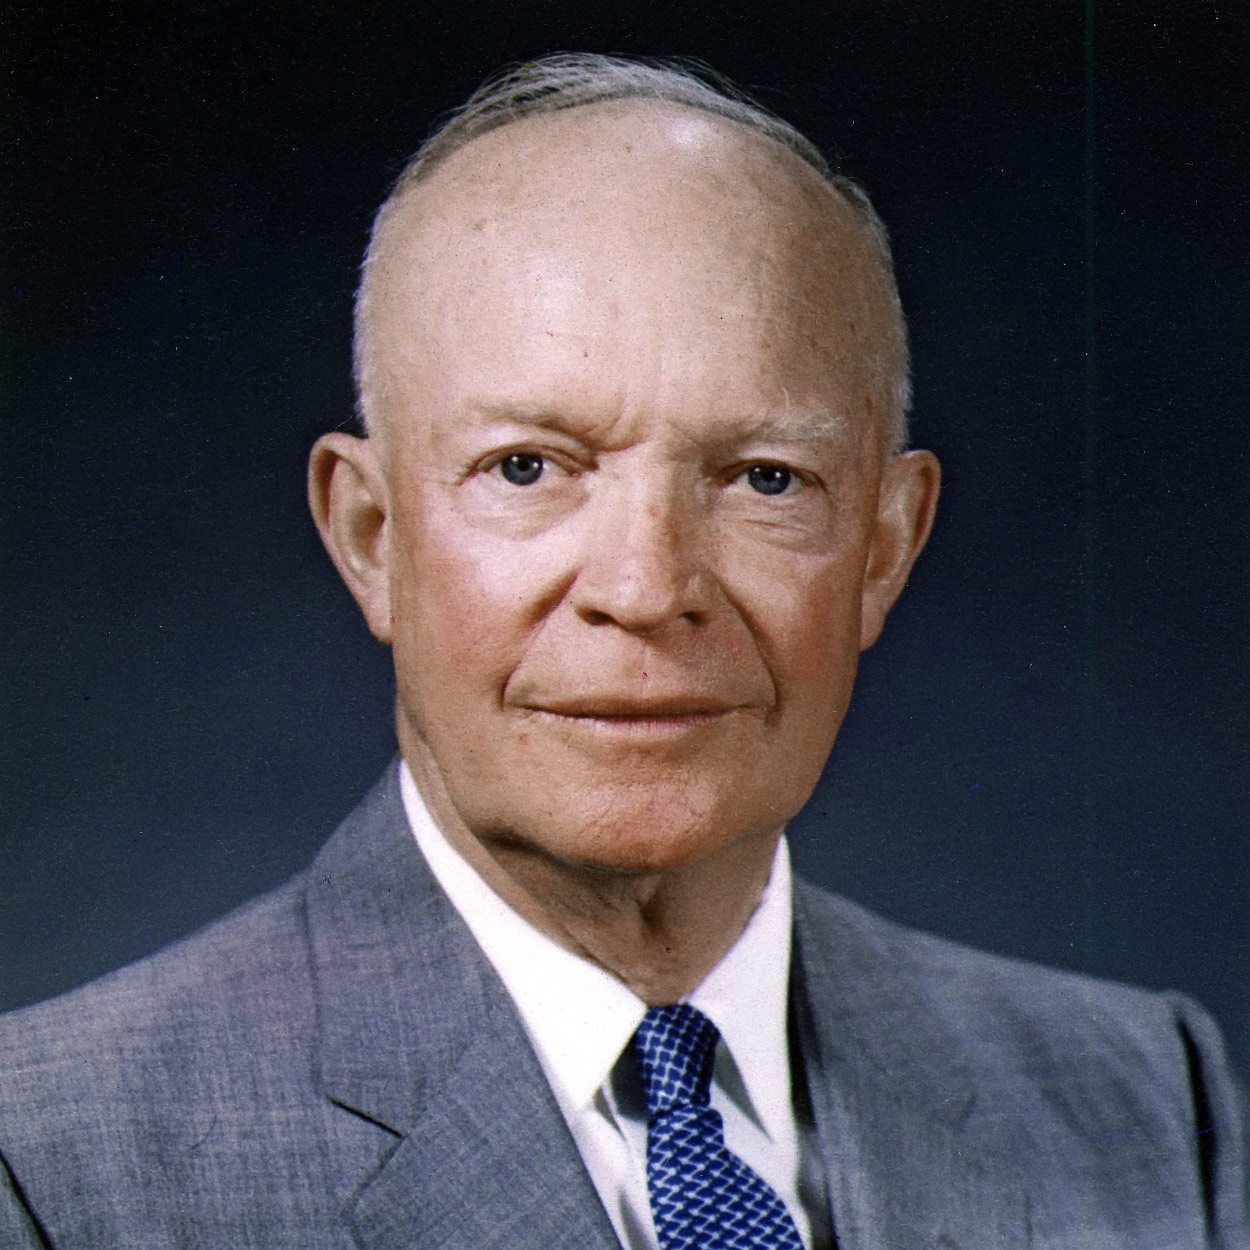 Portrait of Dwight D. Eisenhower, the 34th President of the United States